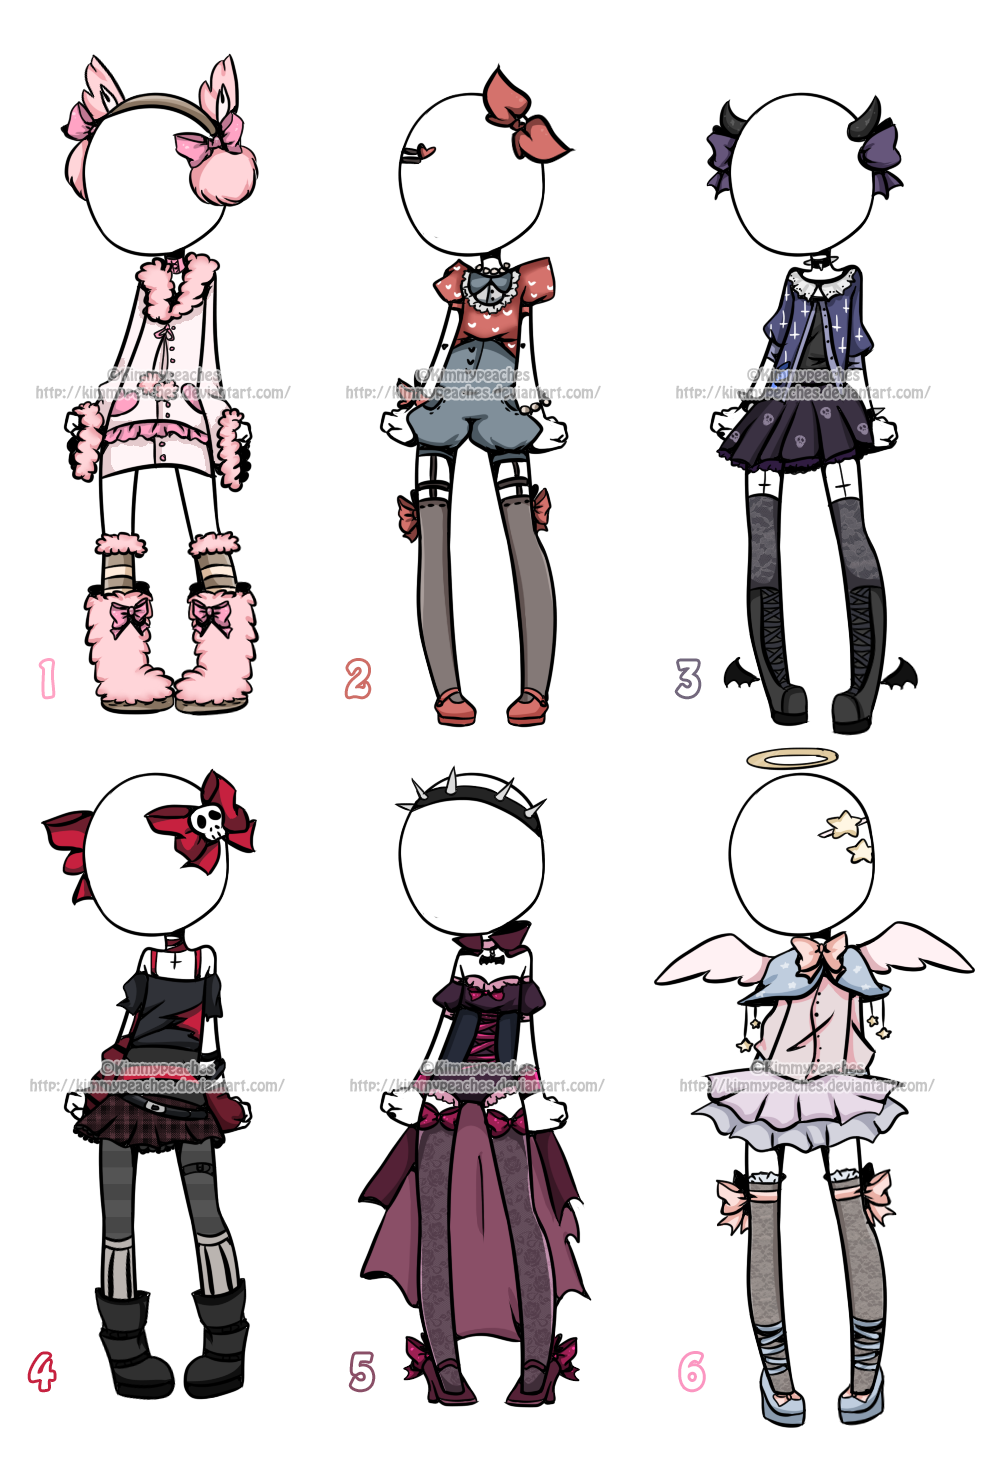 Wardrobe drawing style. Outfit adoptables closed by